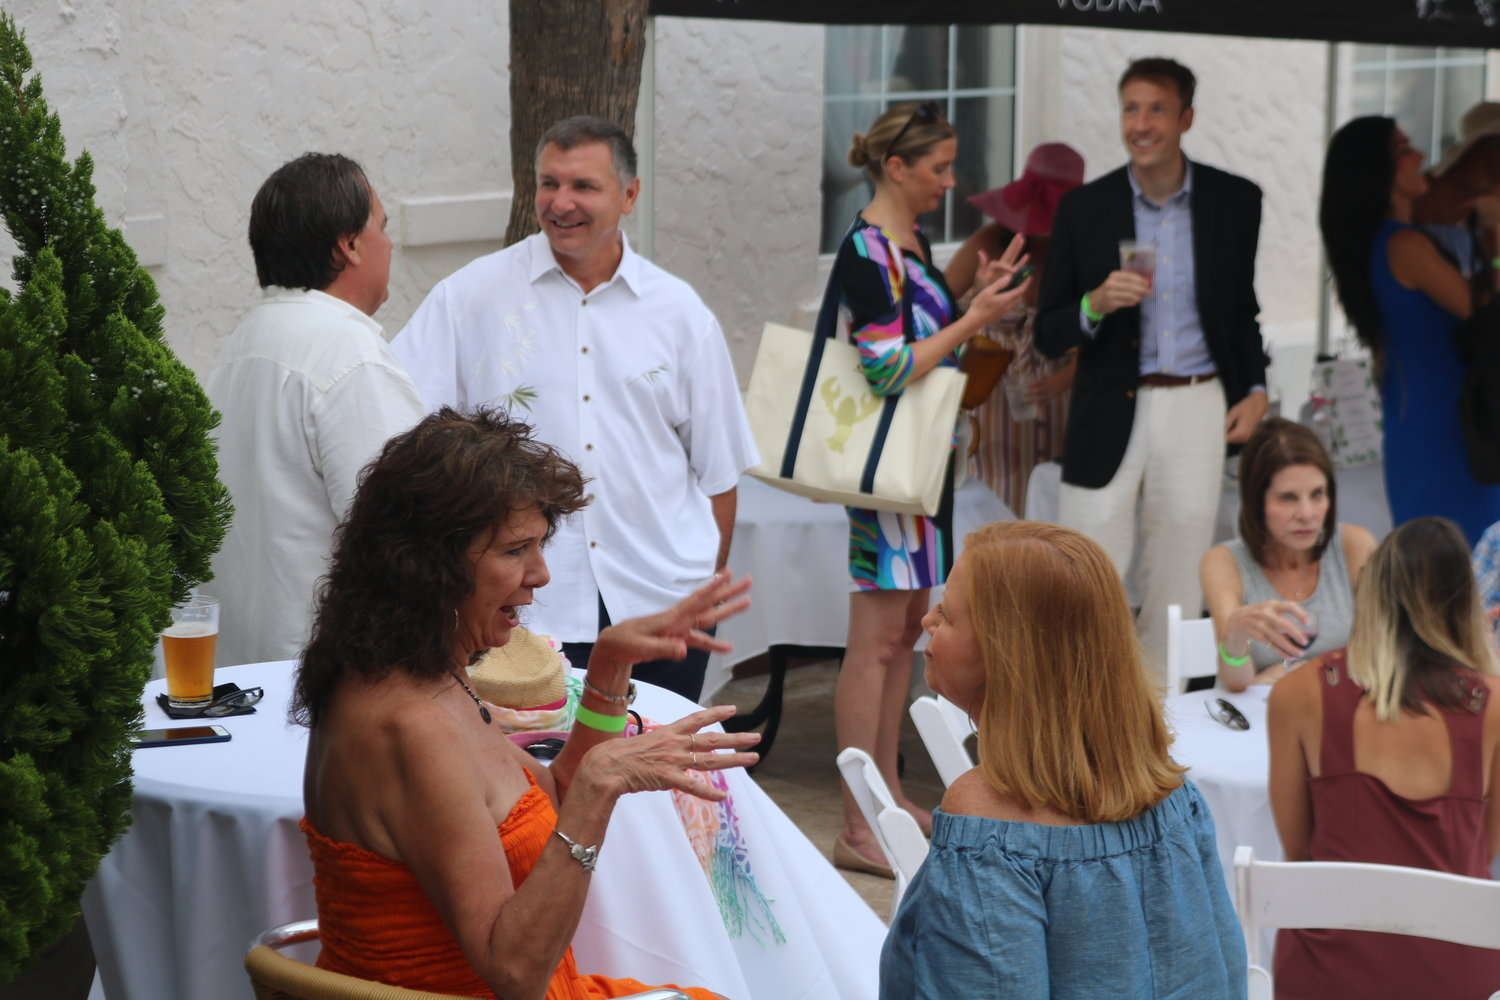 Guests mingled and chatted amongst themselves in the Casa Marina courtyard.